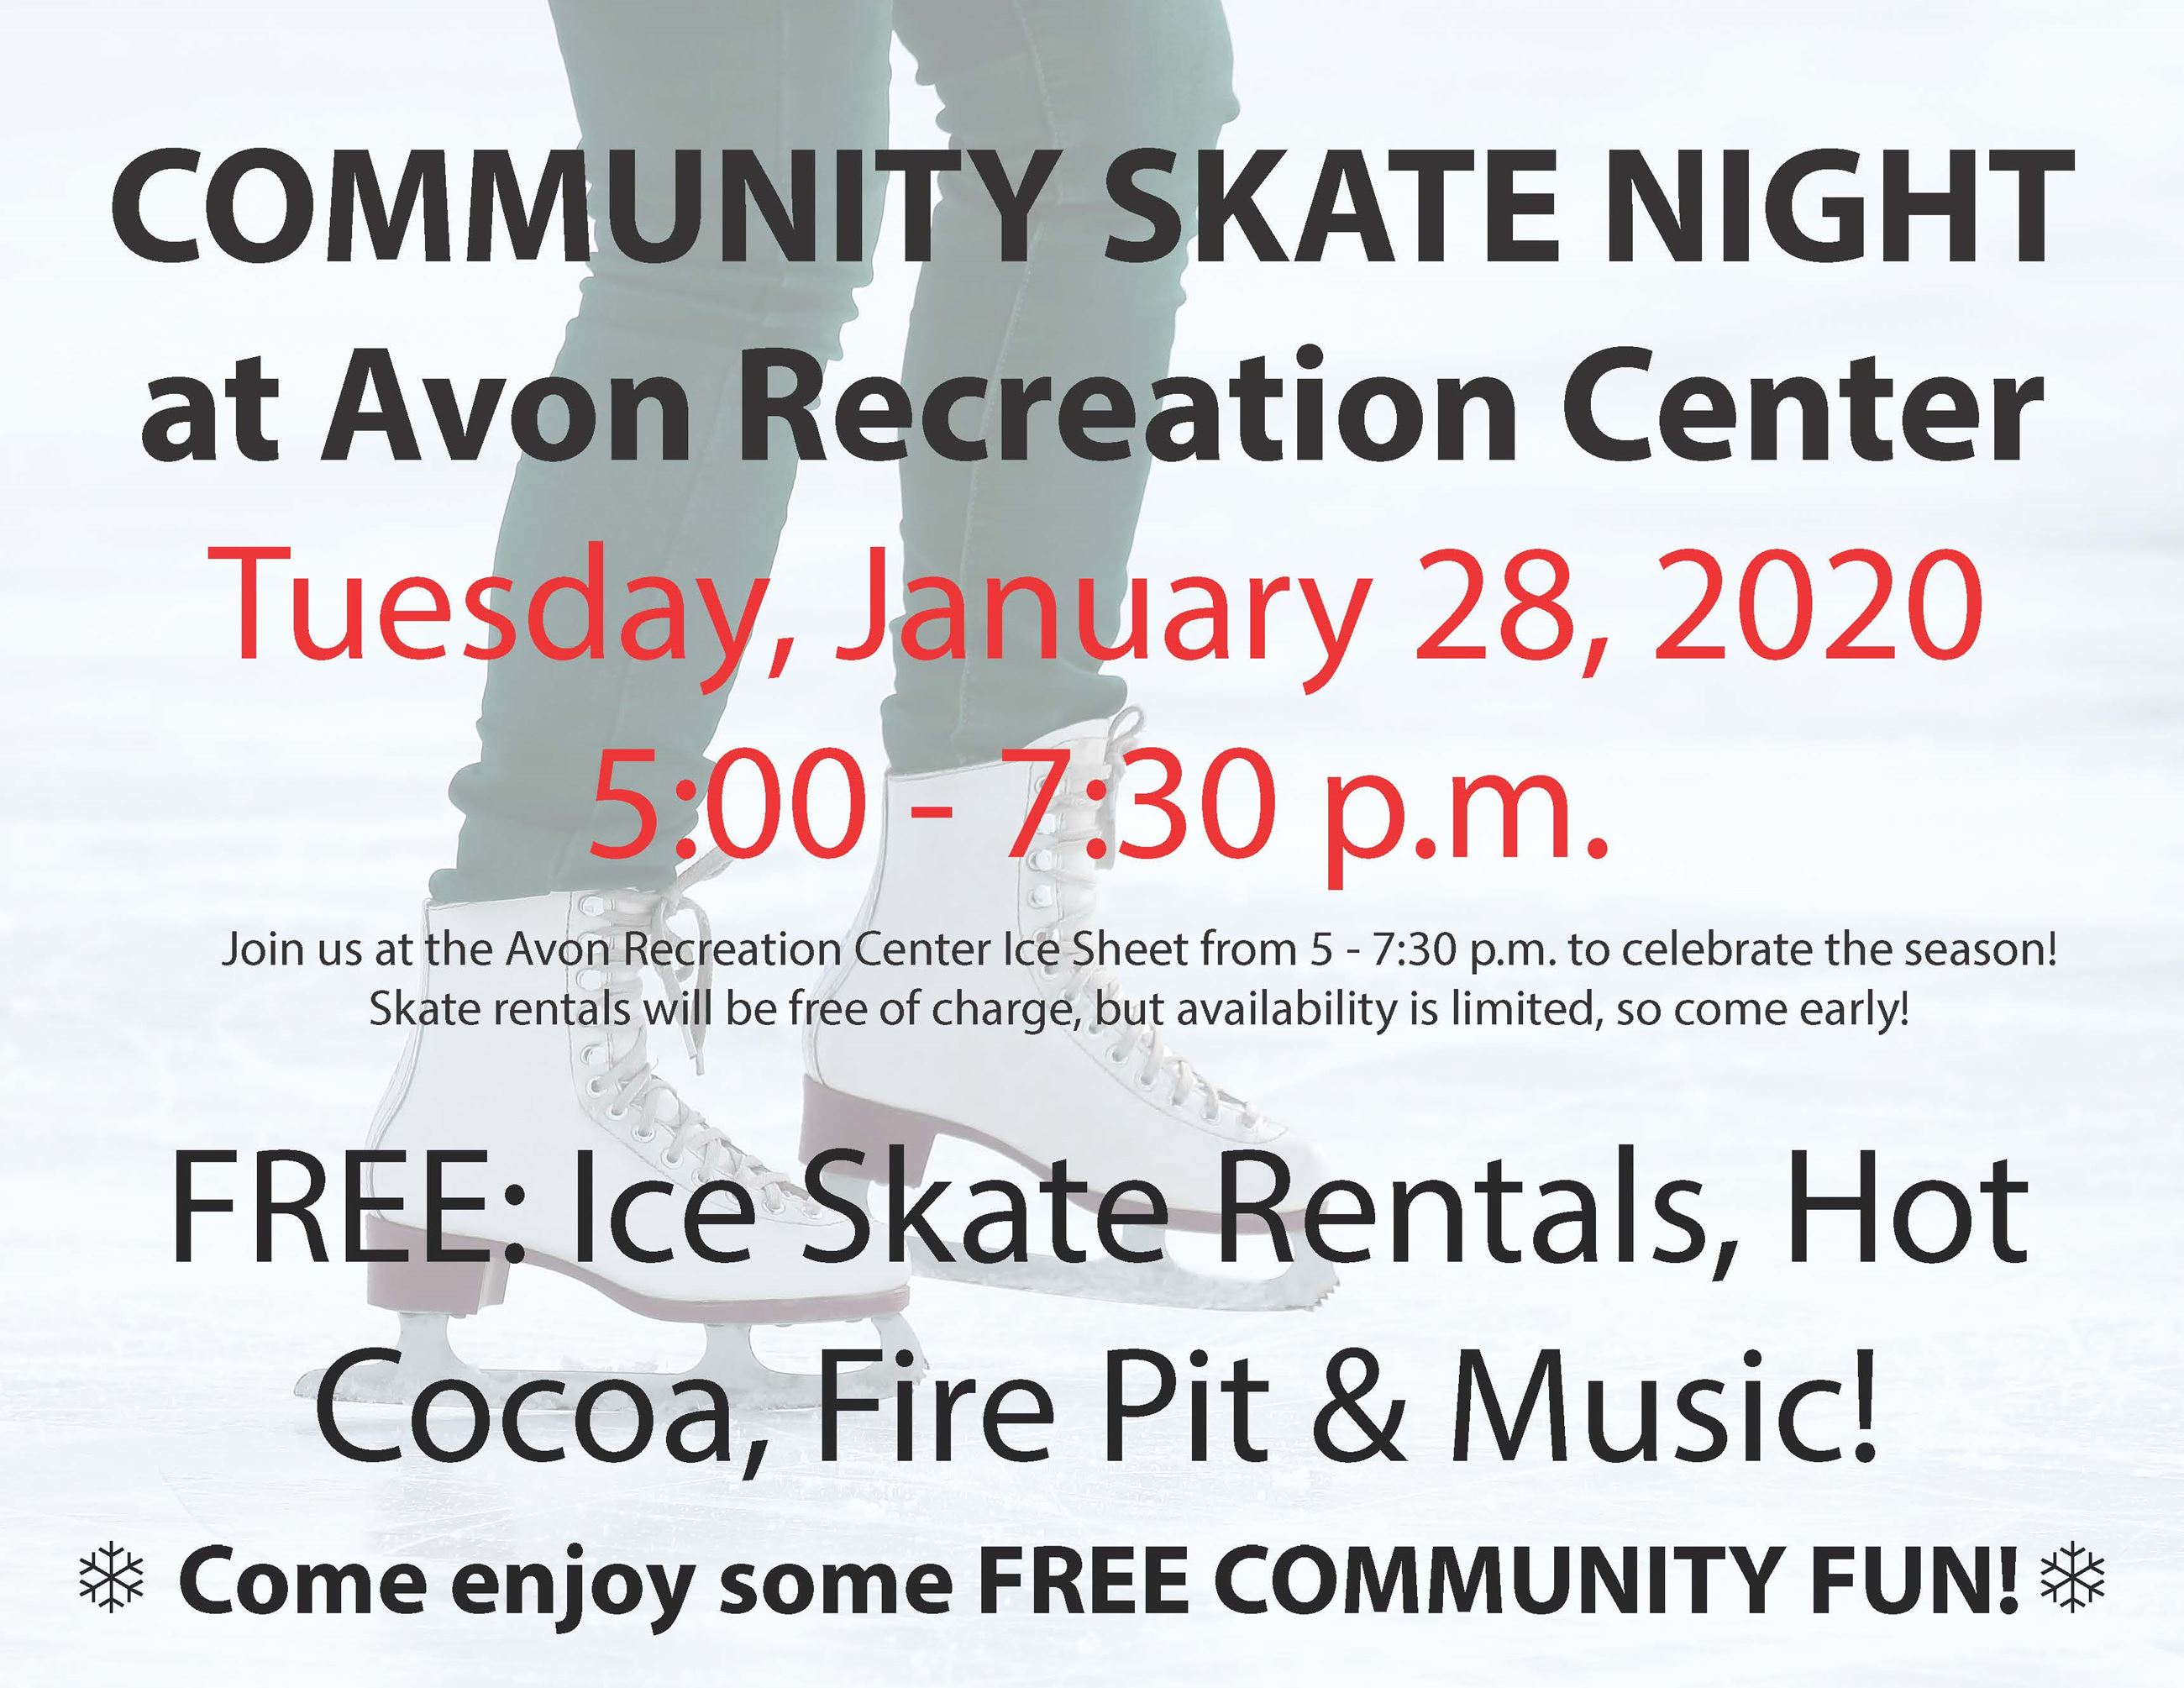 2020 Community Skate Night